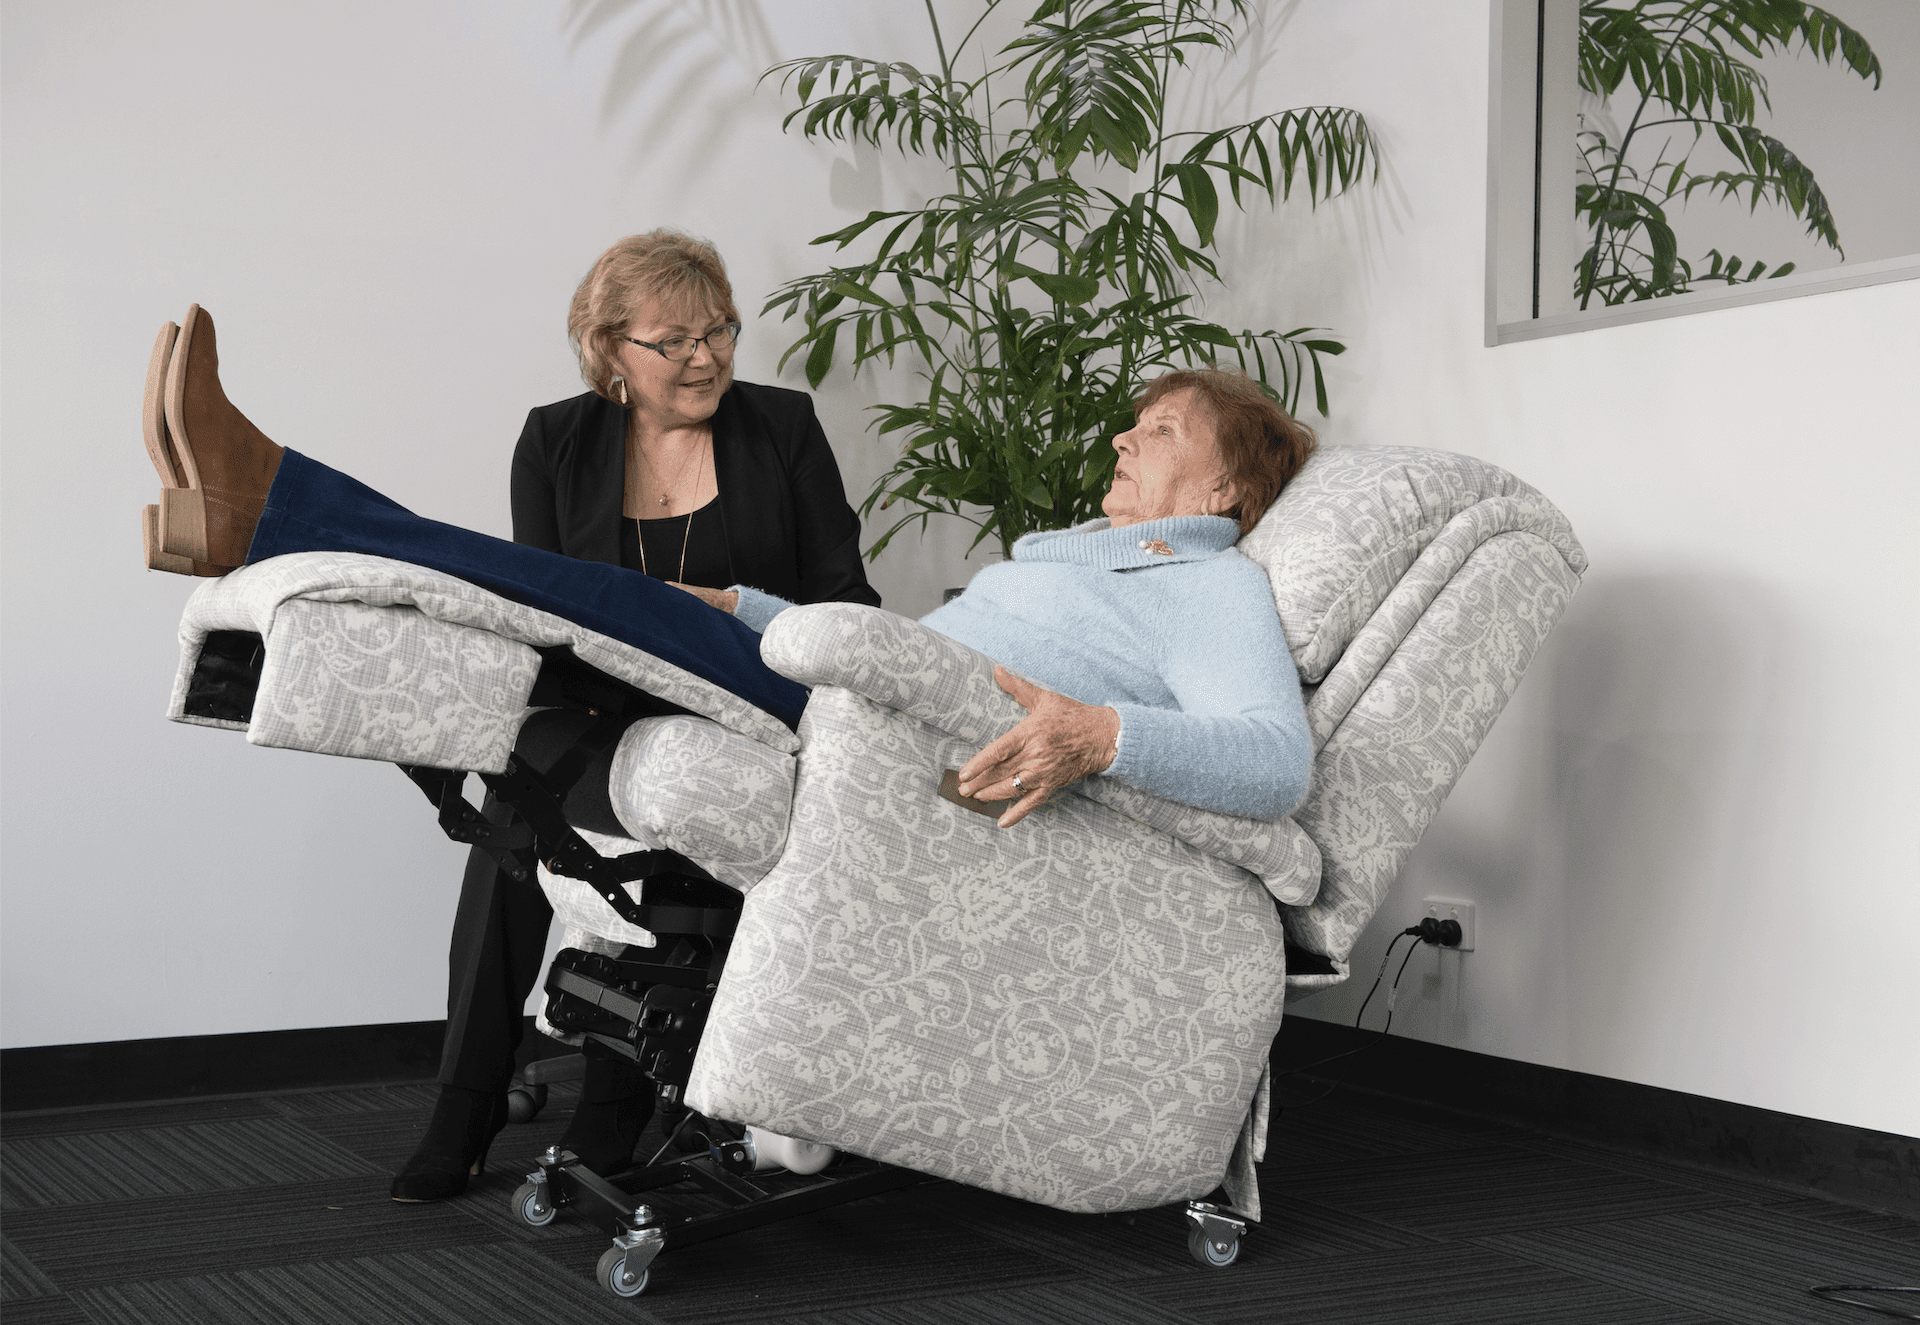 Patented zero gravity chair by Posture Care Chair Co